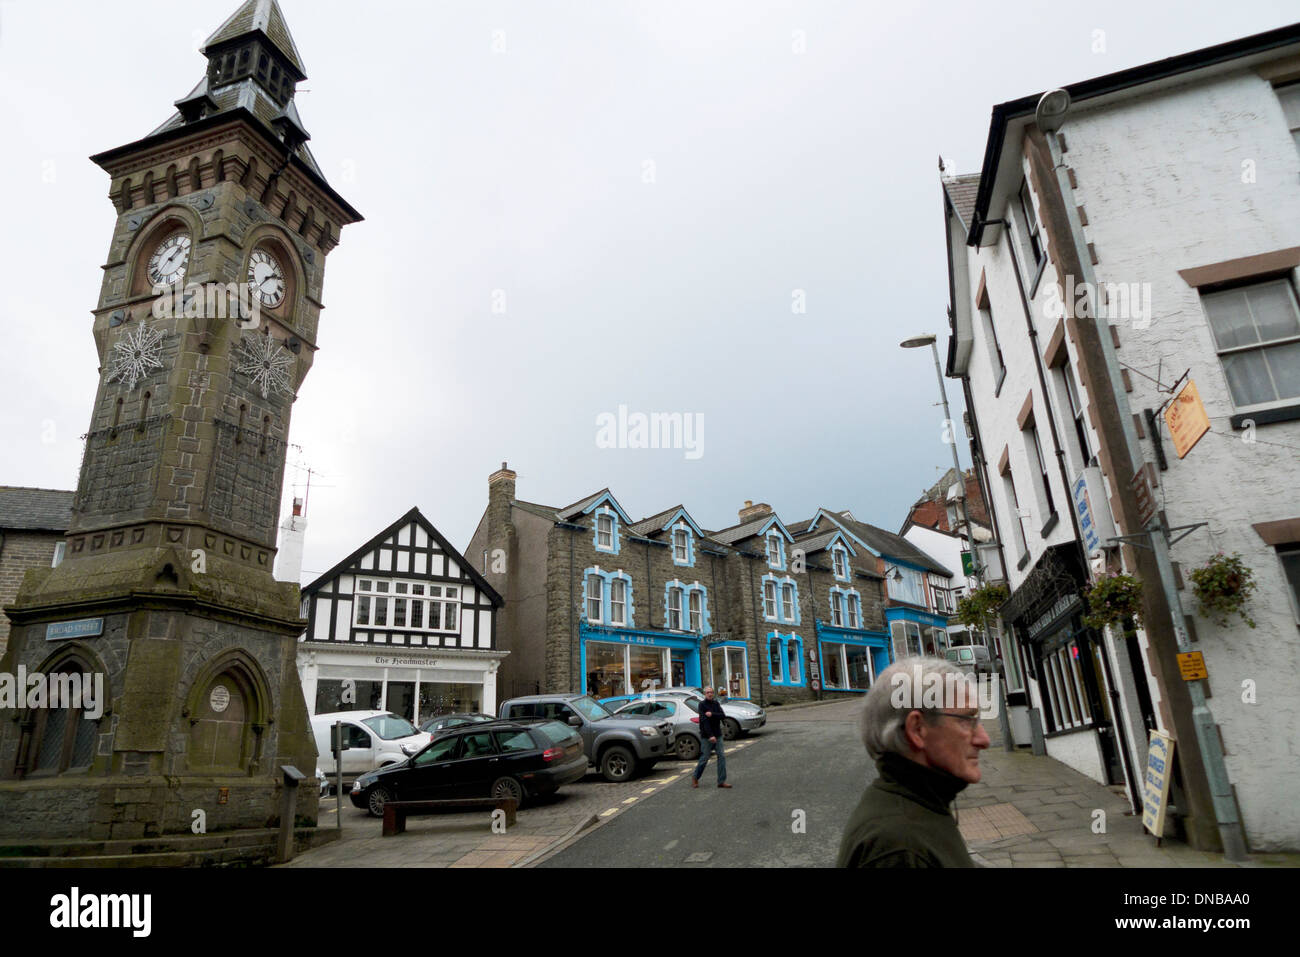 A view of the clock tower and Square on High Street in Knighton Powys Wales UK  KATHY DEWITT - Stock Image